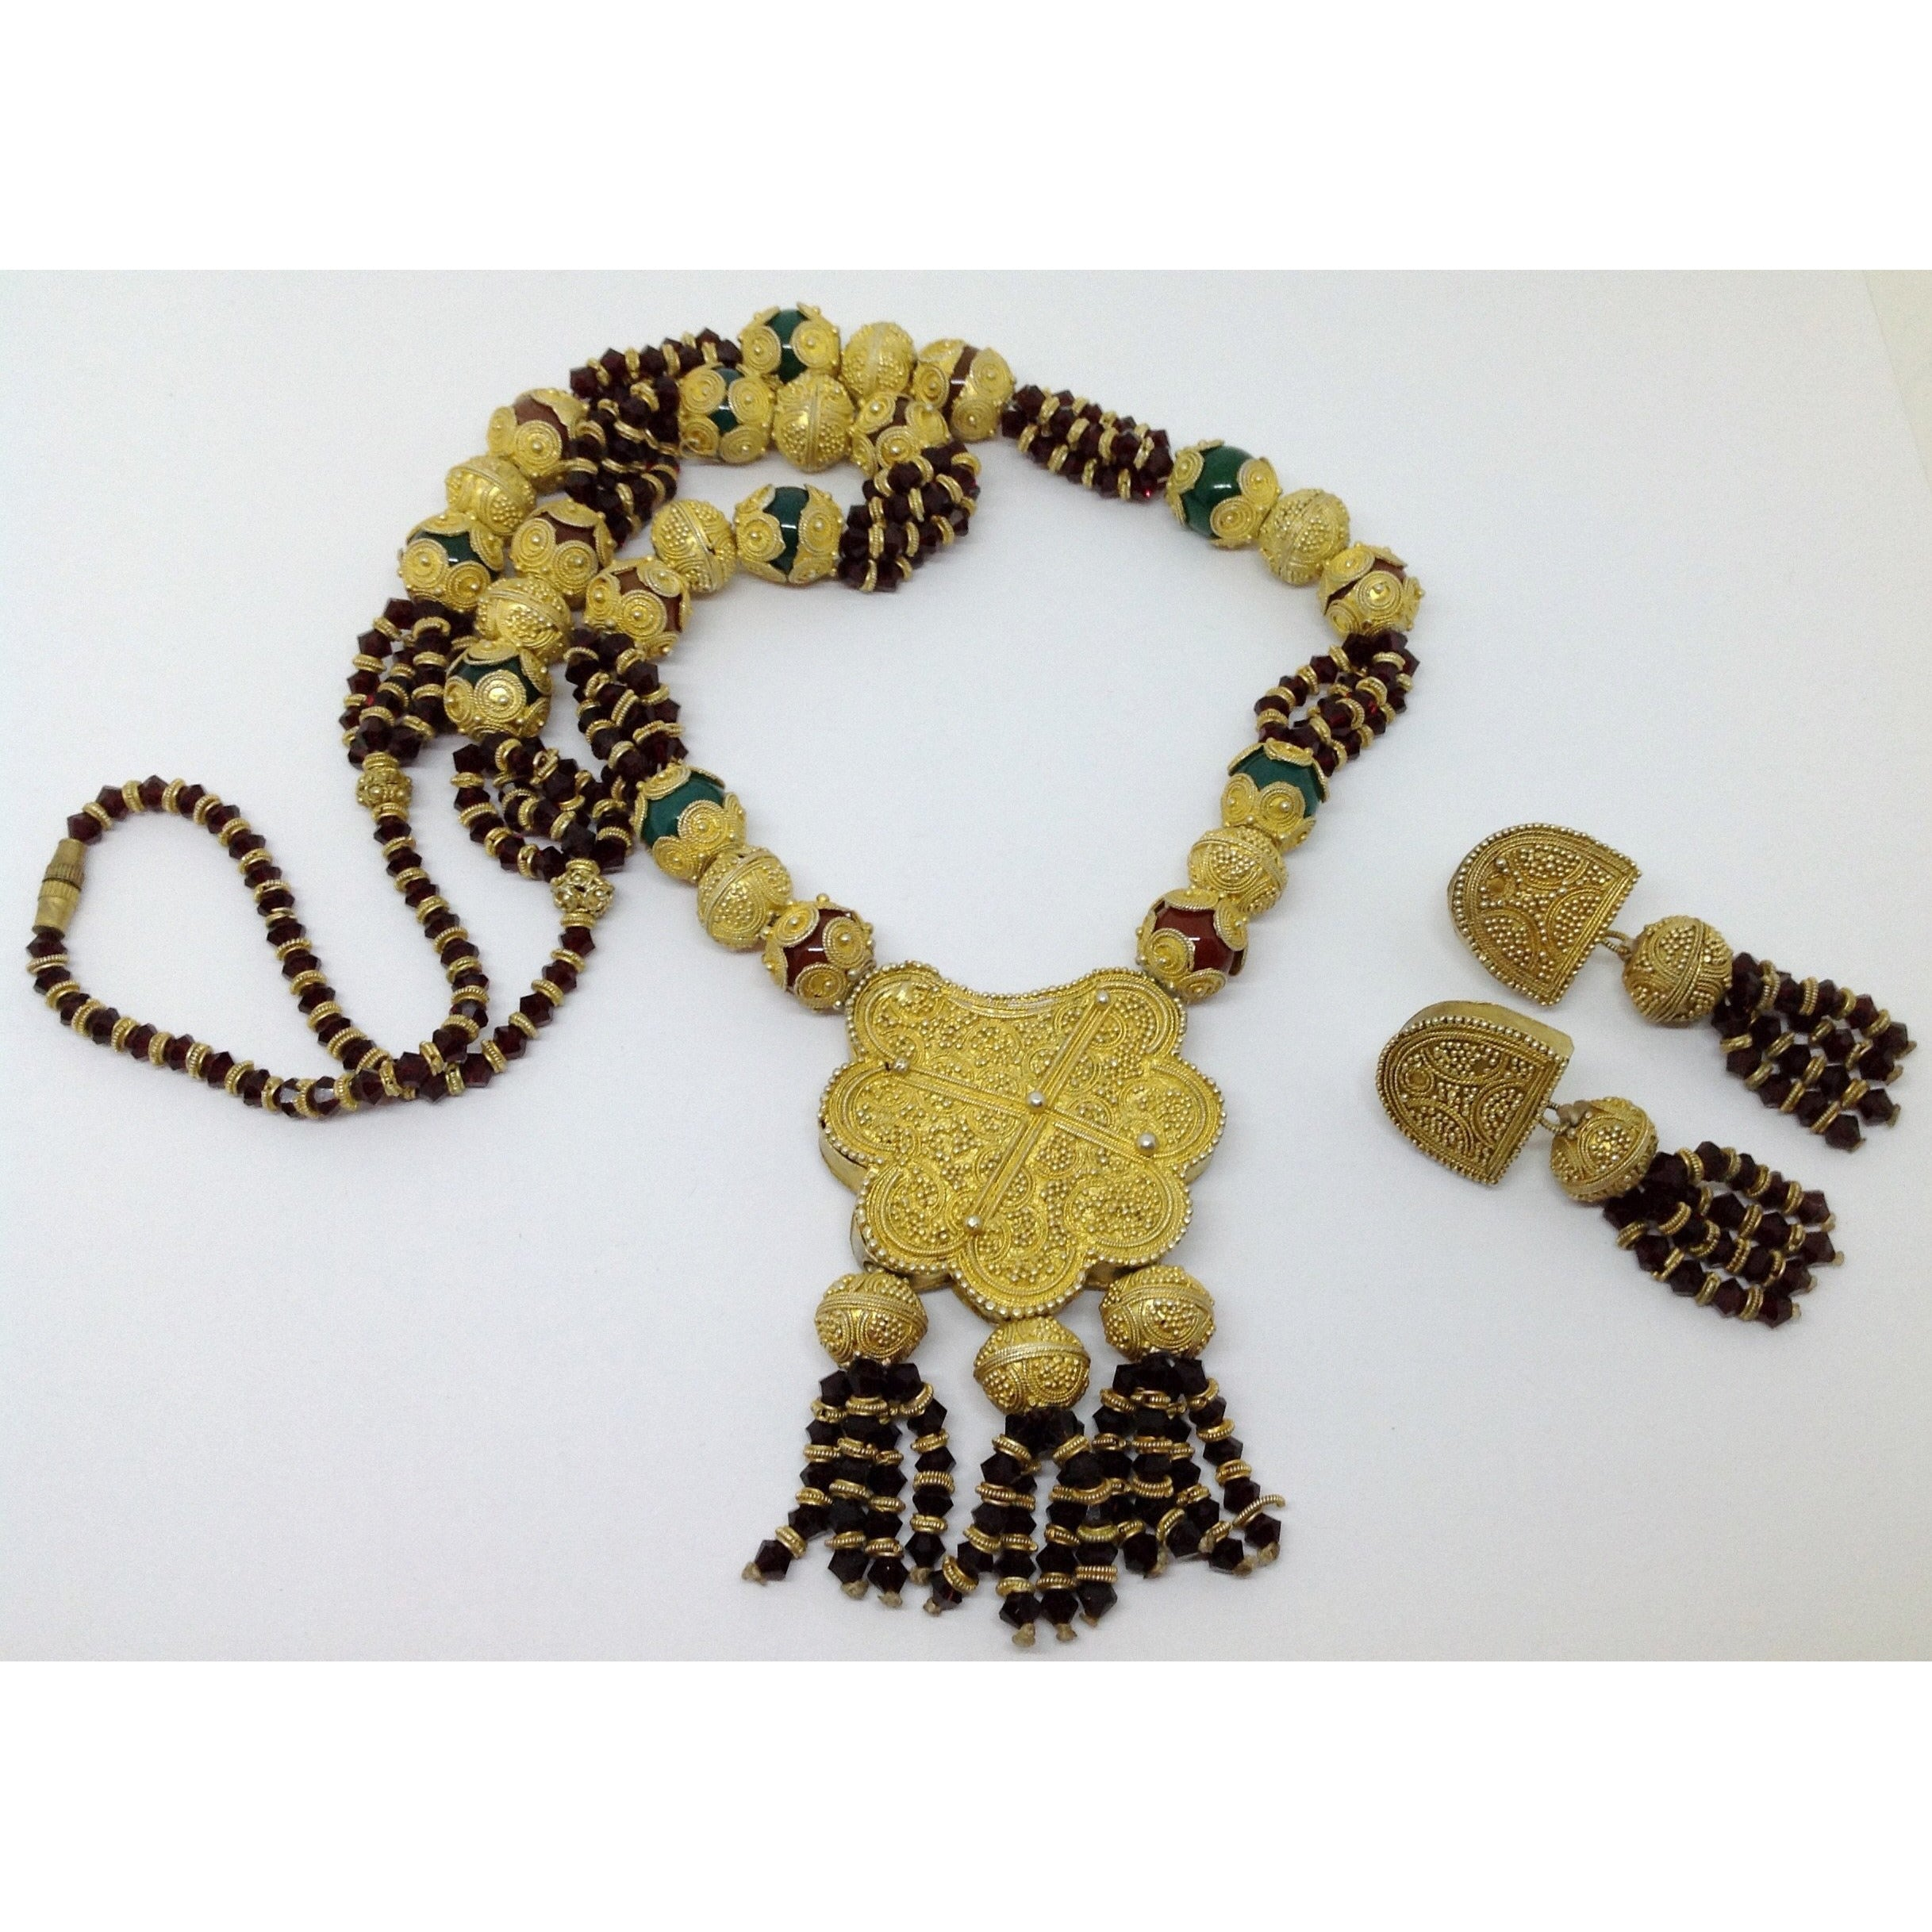 expertissim berber berbere morocco parure draa valley necklace set jewelry